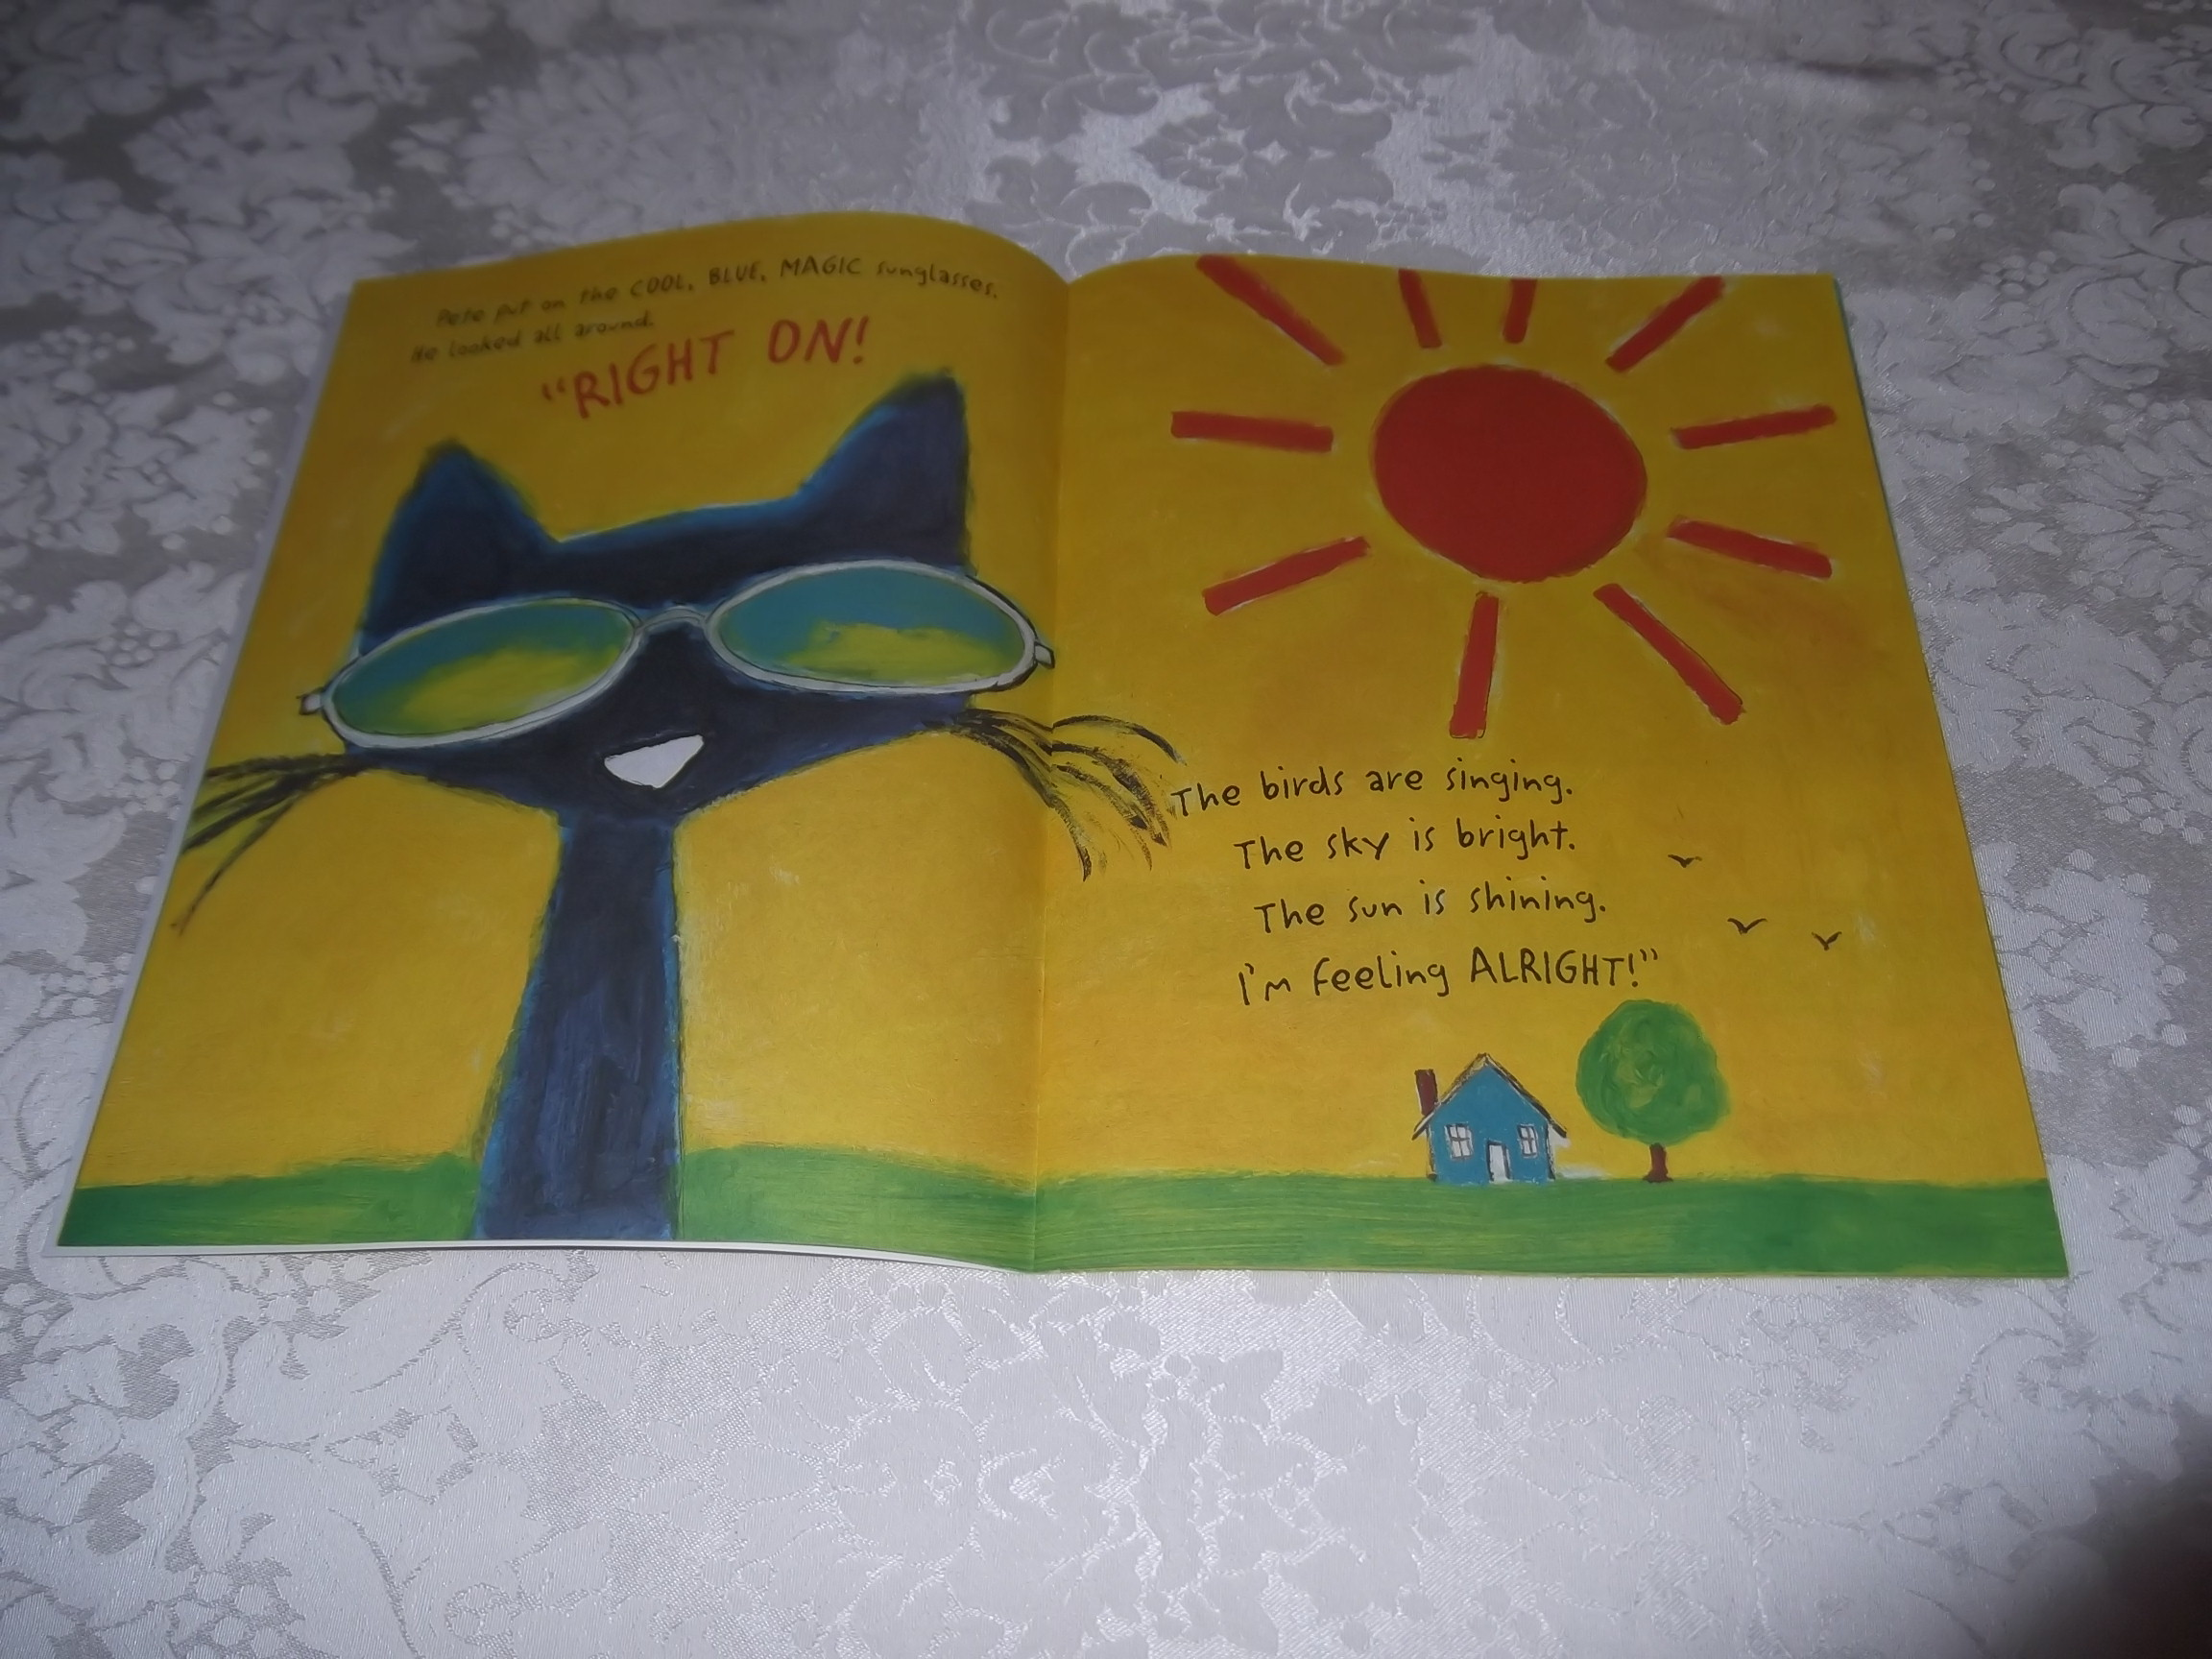 Image 1 of Pete the Cat and His Magic Sunglasses Kimberly and James Dean Brand New SC